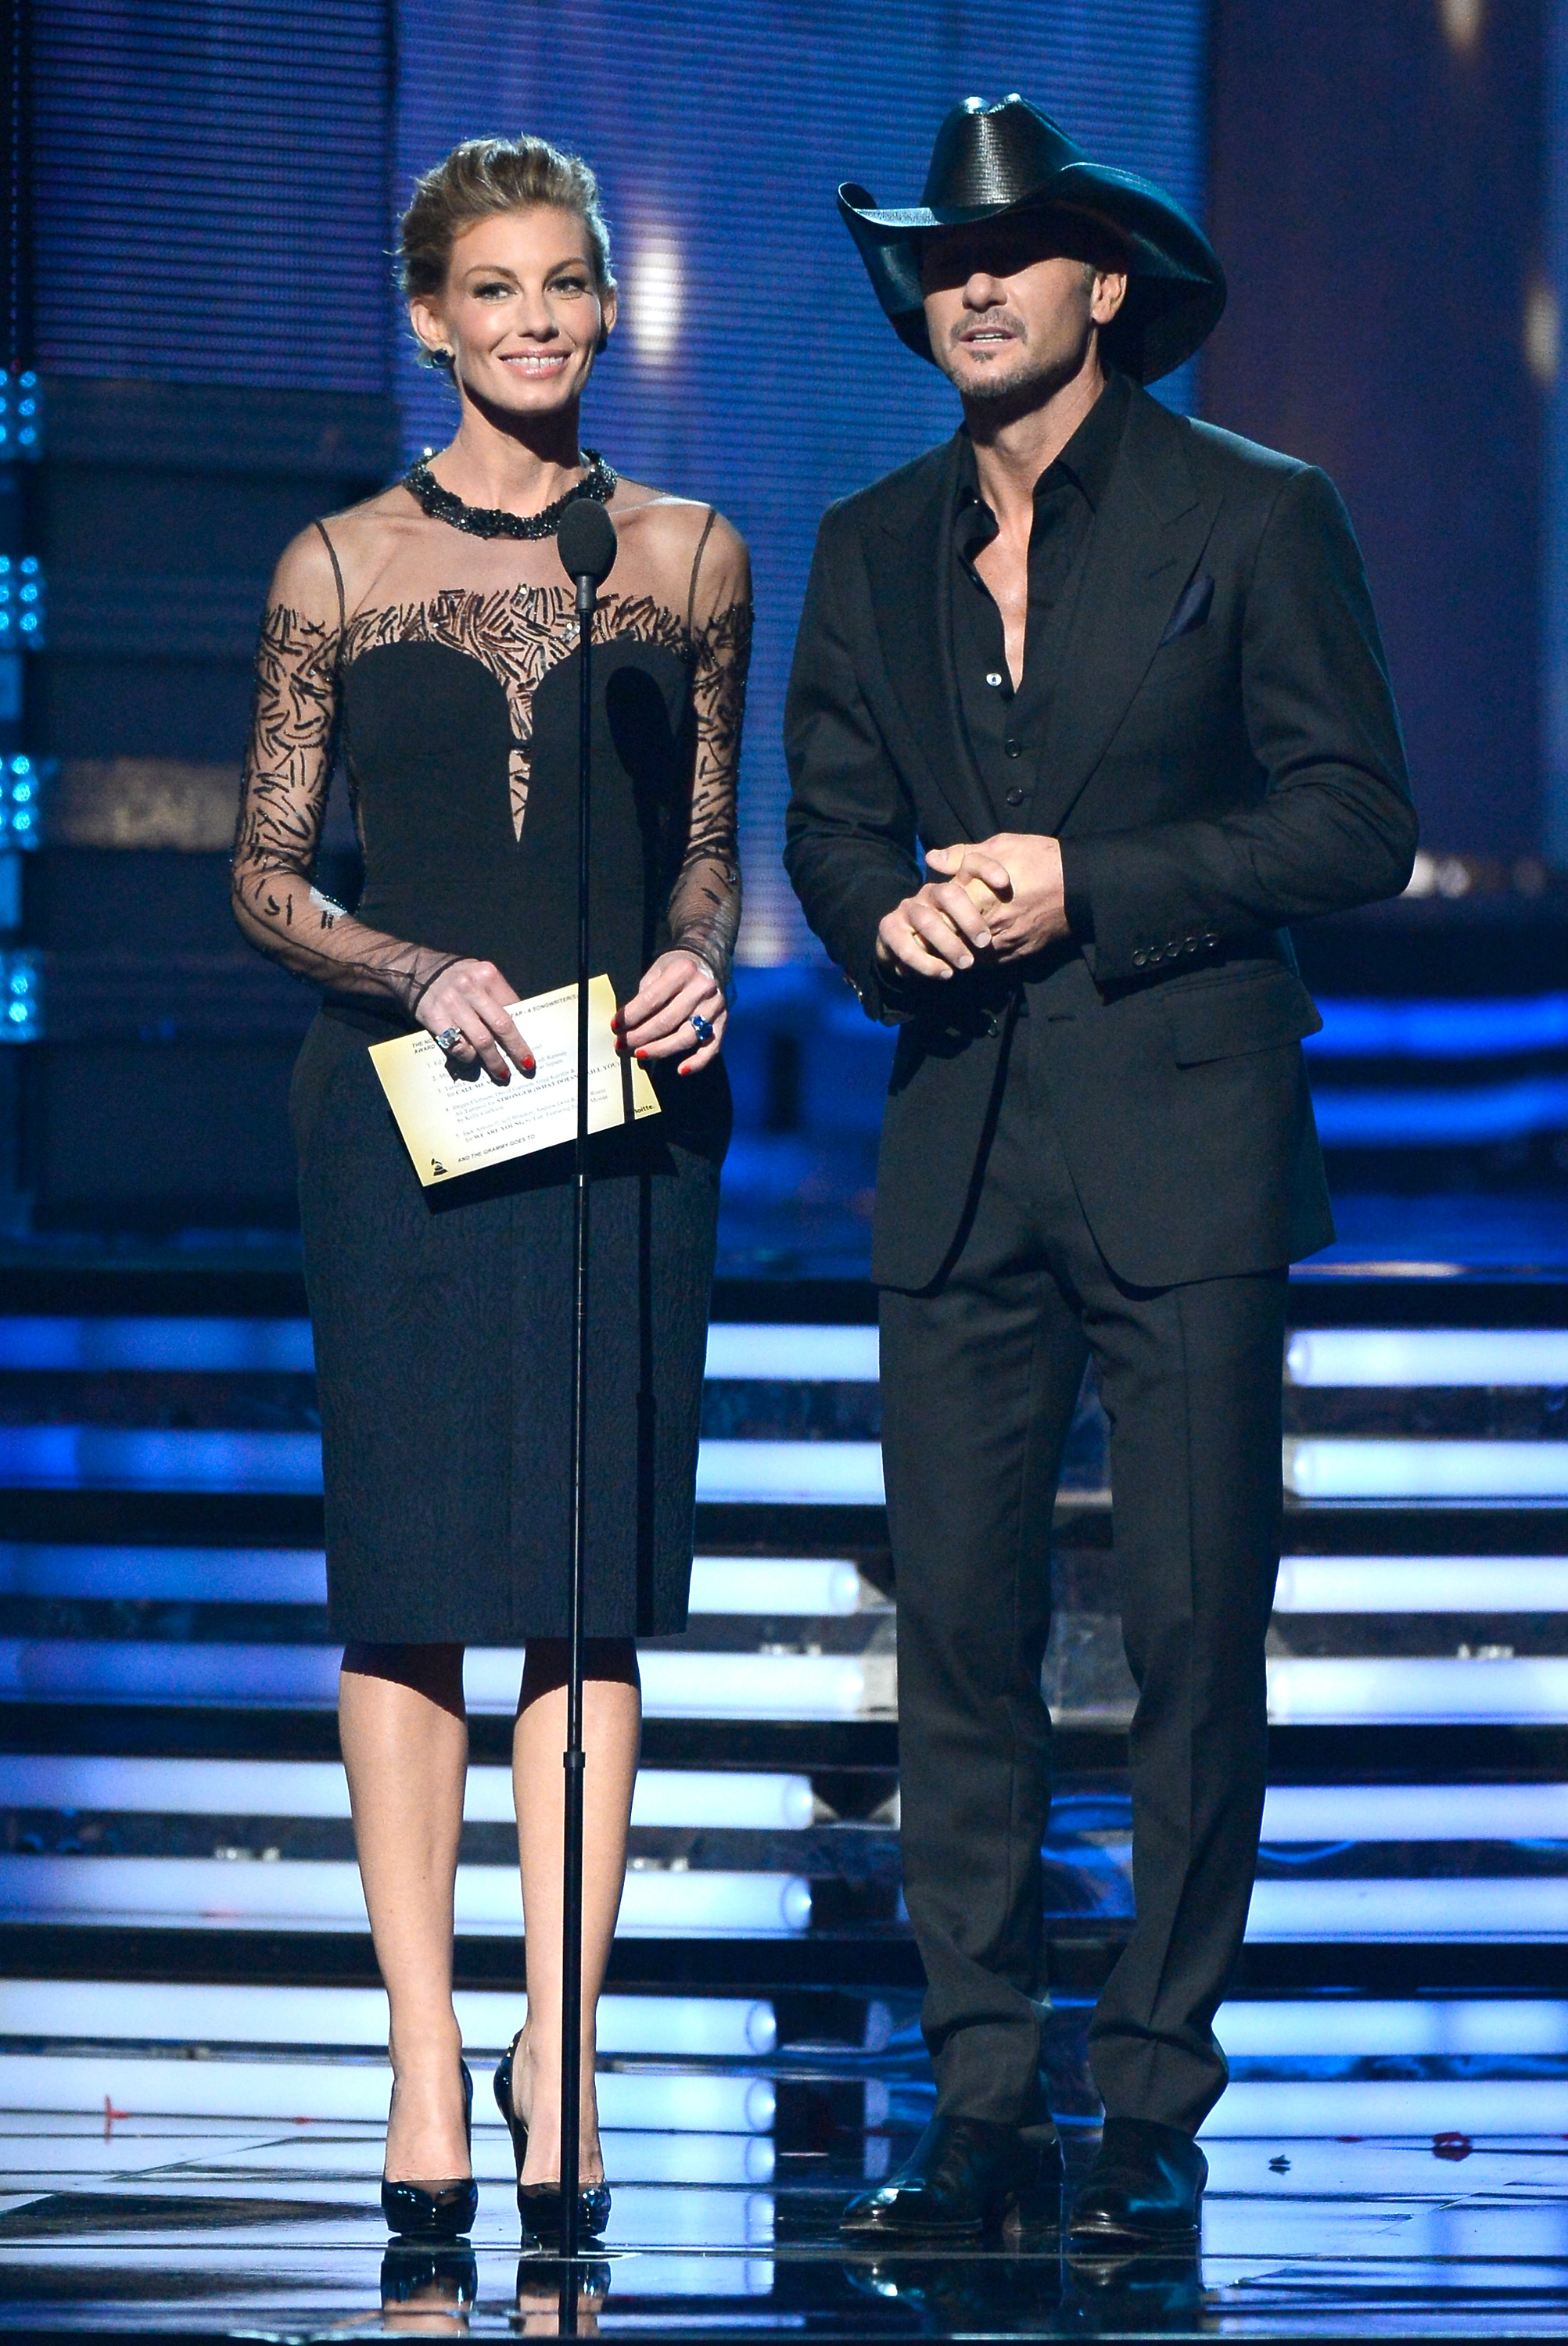 Faith Hill and Tim McGraw presented together at the 2013 Grammys.